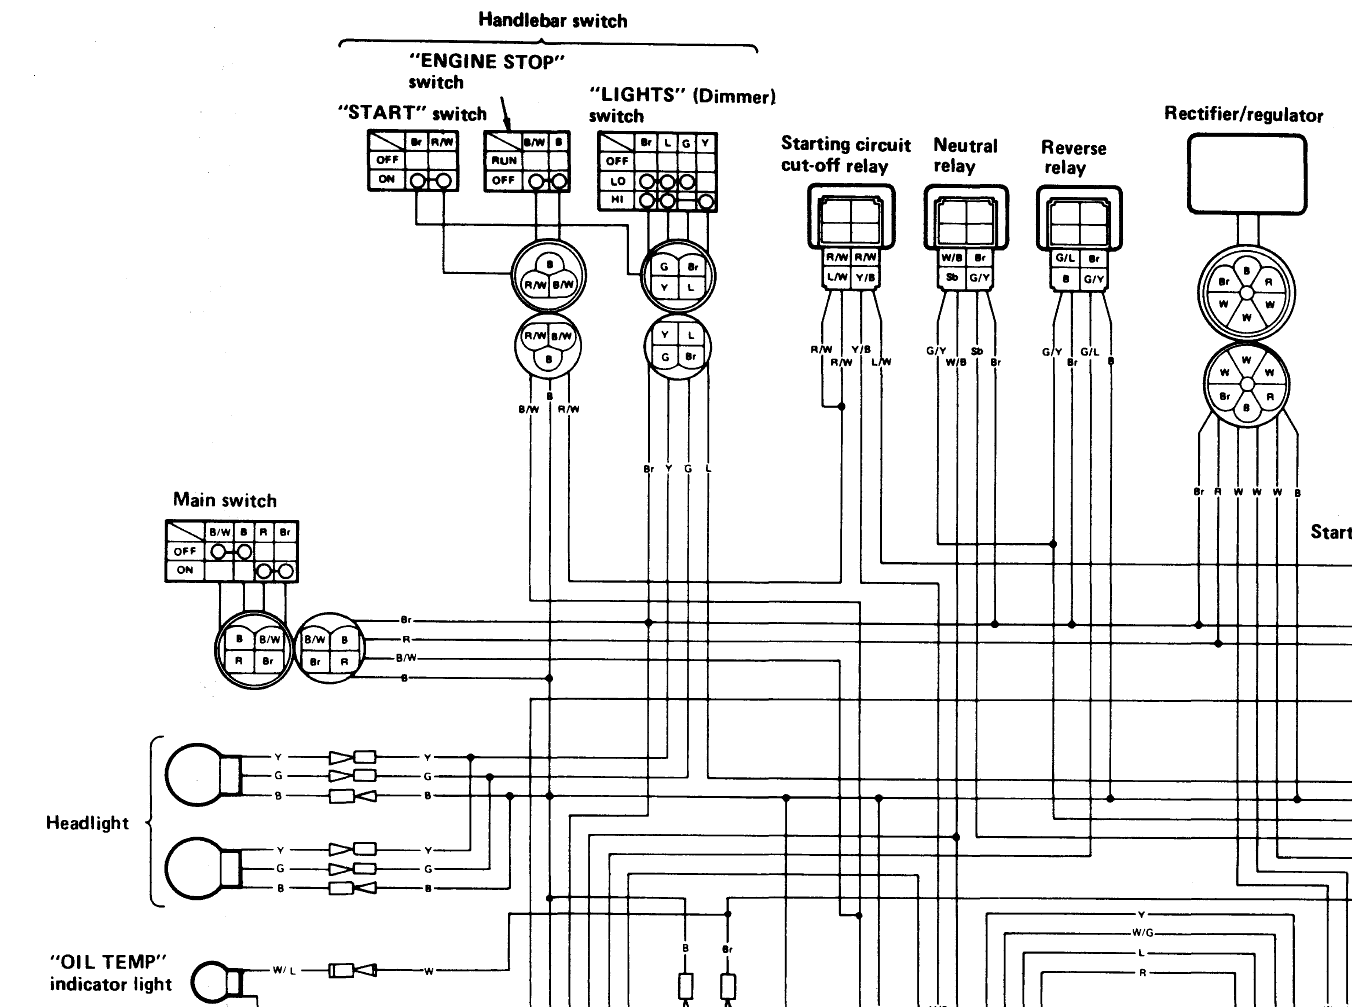 bayoui kawasaki wire harness diagram